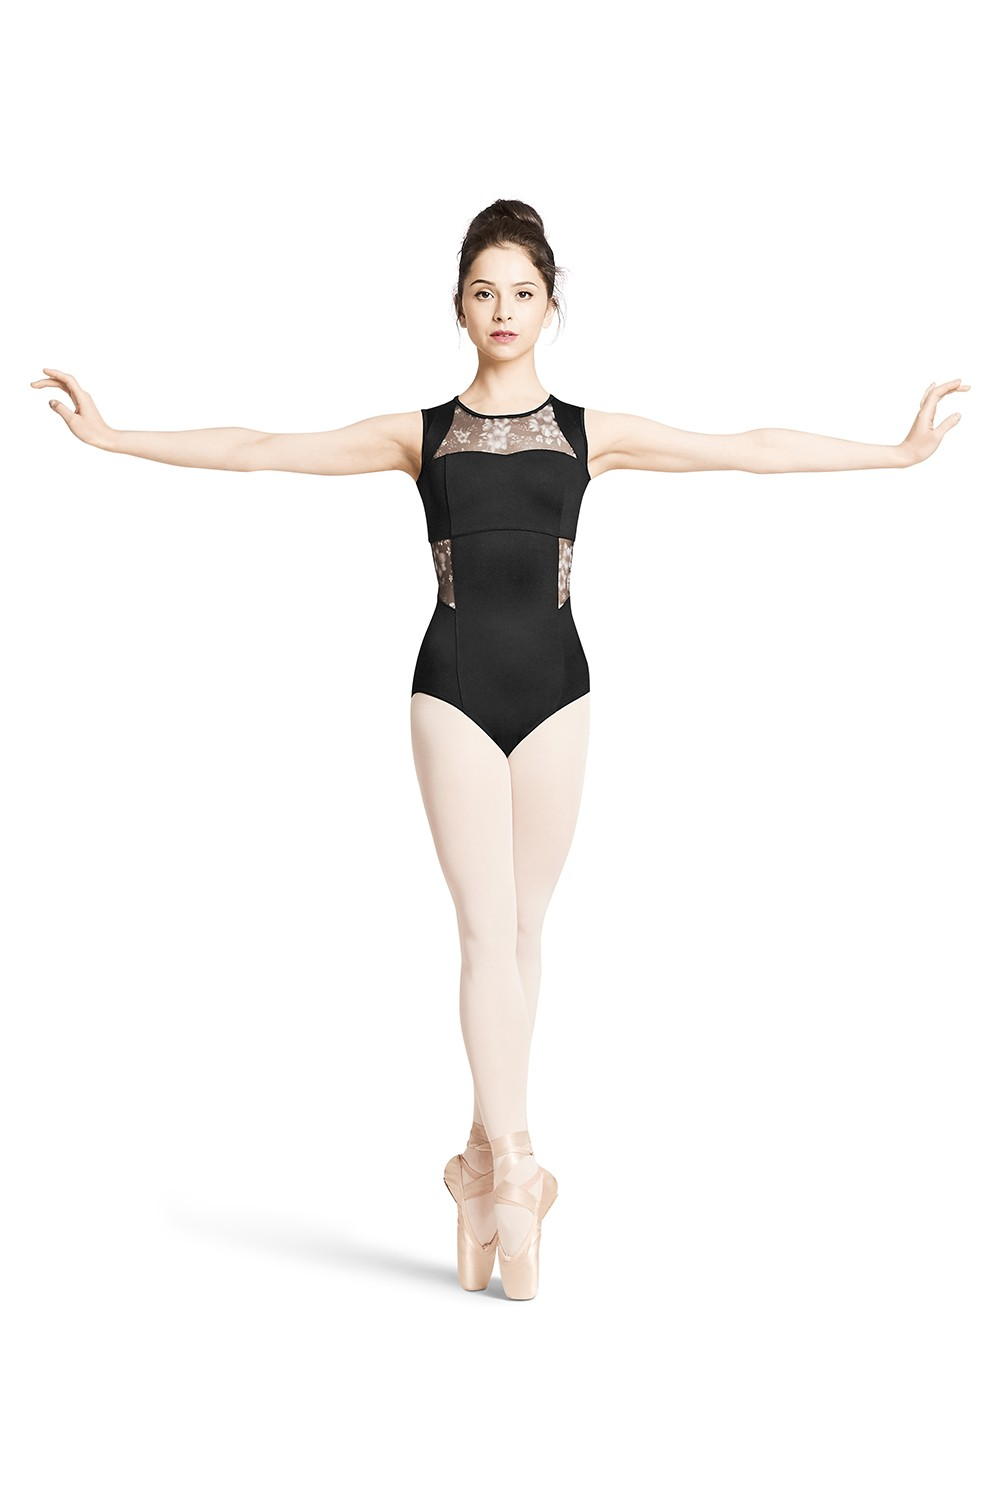 Body Con Chiusura A Cerniera Sul Retro Women's Dance Leotards